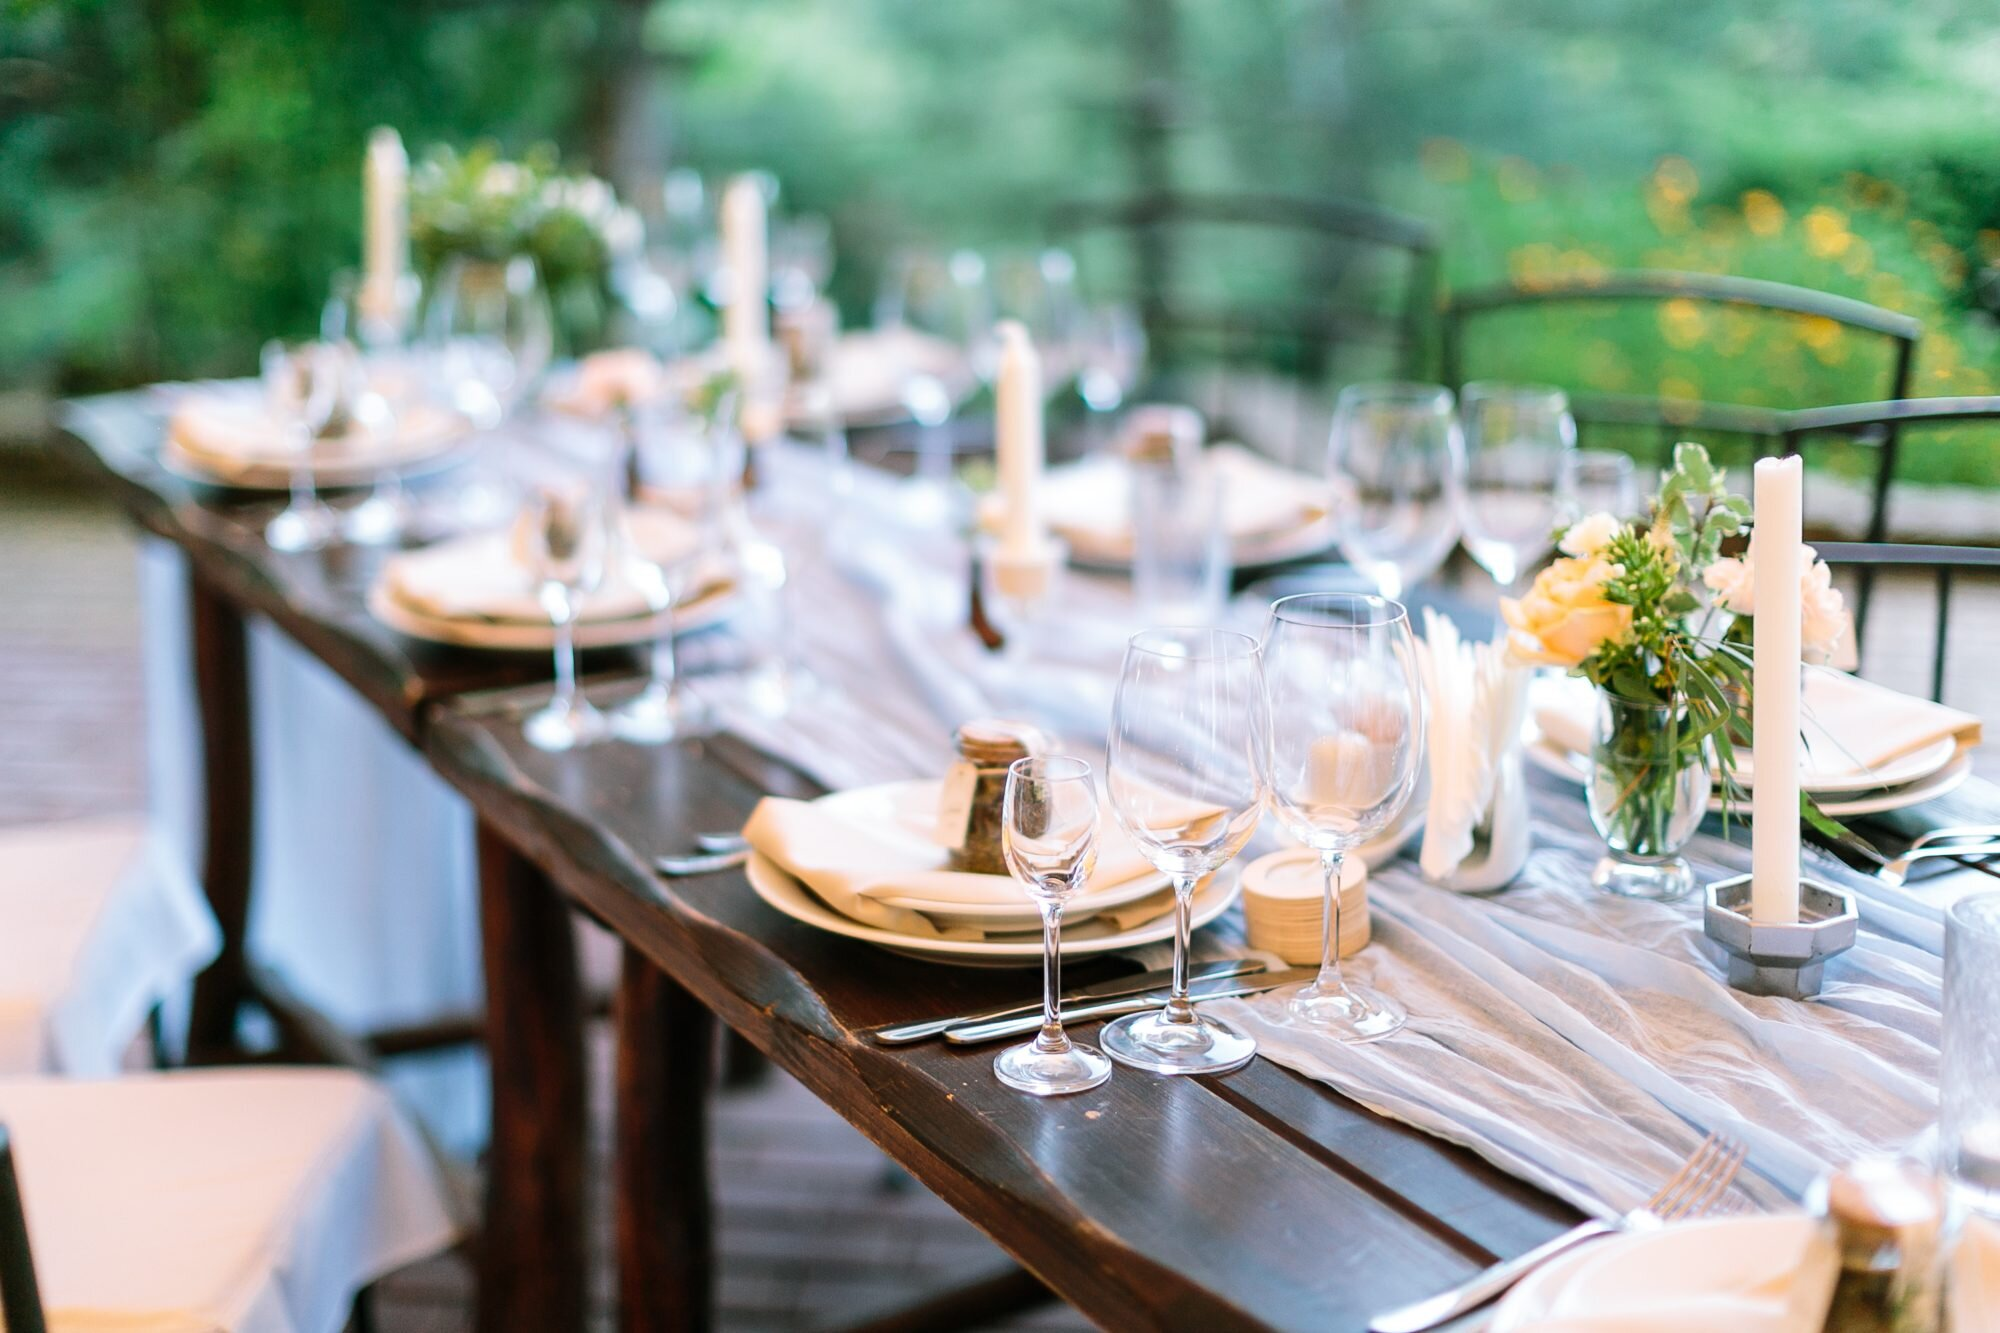 Wedding Receptions Tables.4 Delicious Wedding Menu Ideas That Won T Disappoint